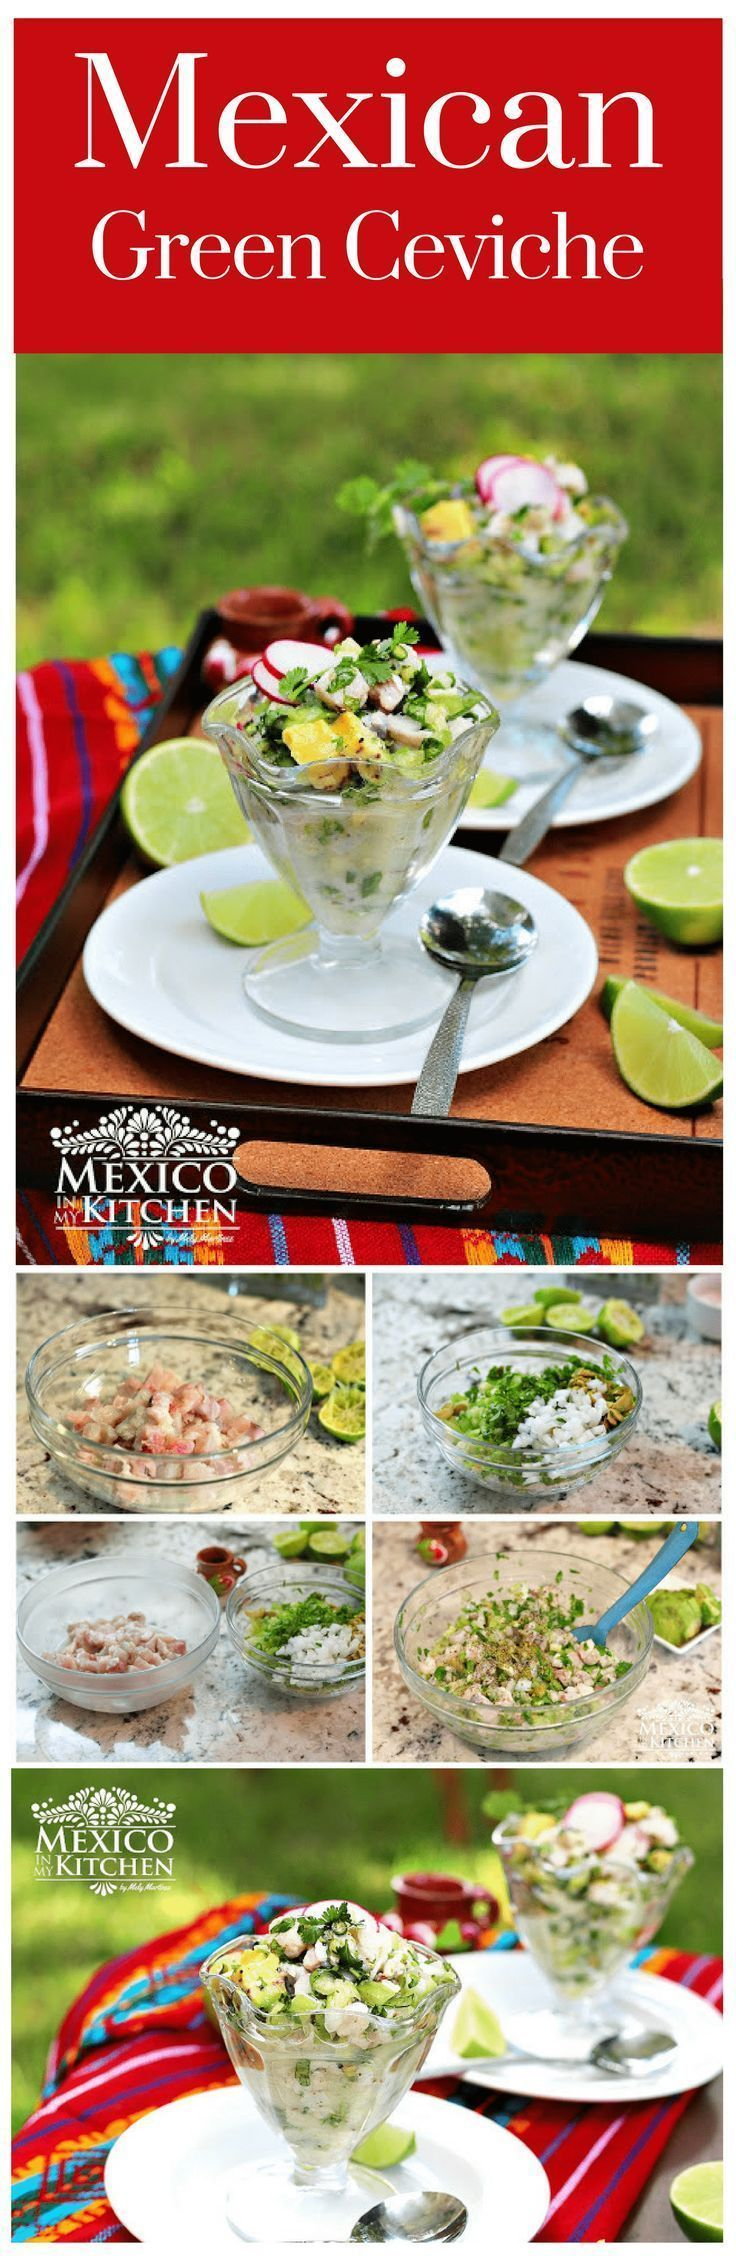 How to make Mexican Green Ceviche │this is a dish prepared with raw fish that is usually marinated in lime juice and other fresh ingredients #MEXICANRECIPES #MEXICANCUISINE #FISH #MEXICANFOOD